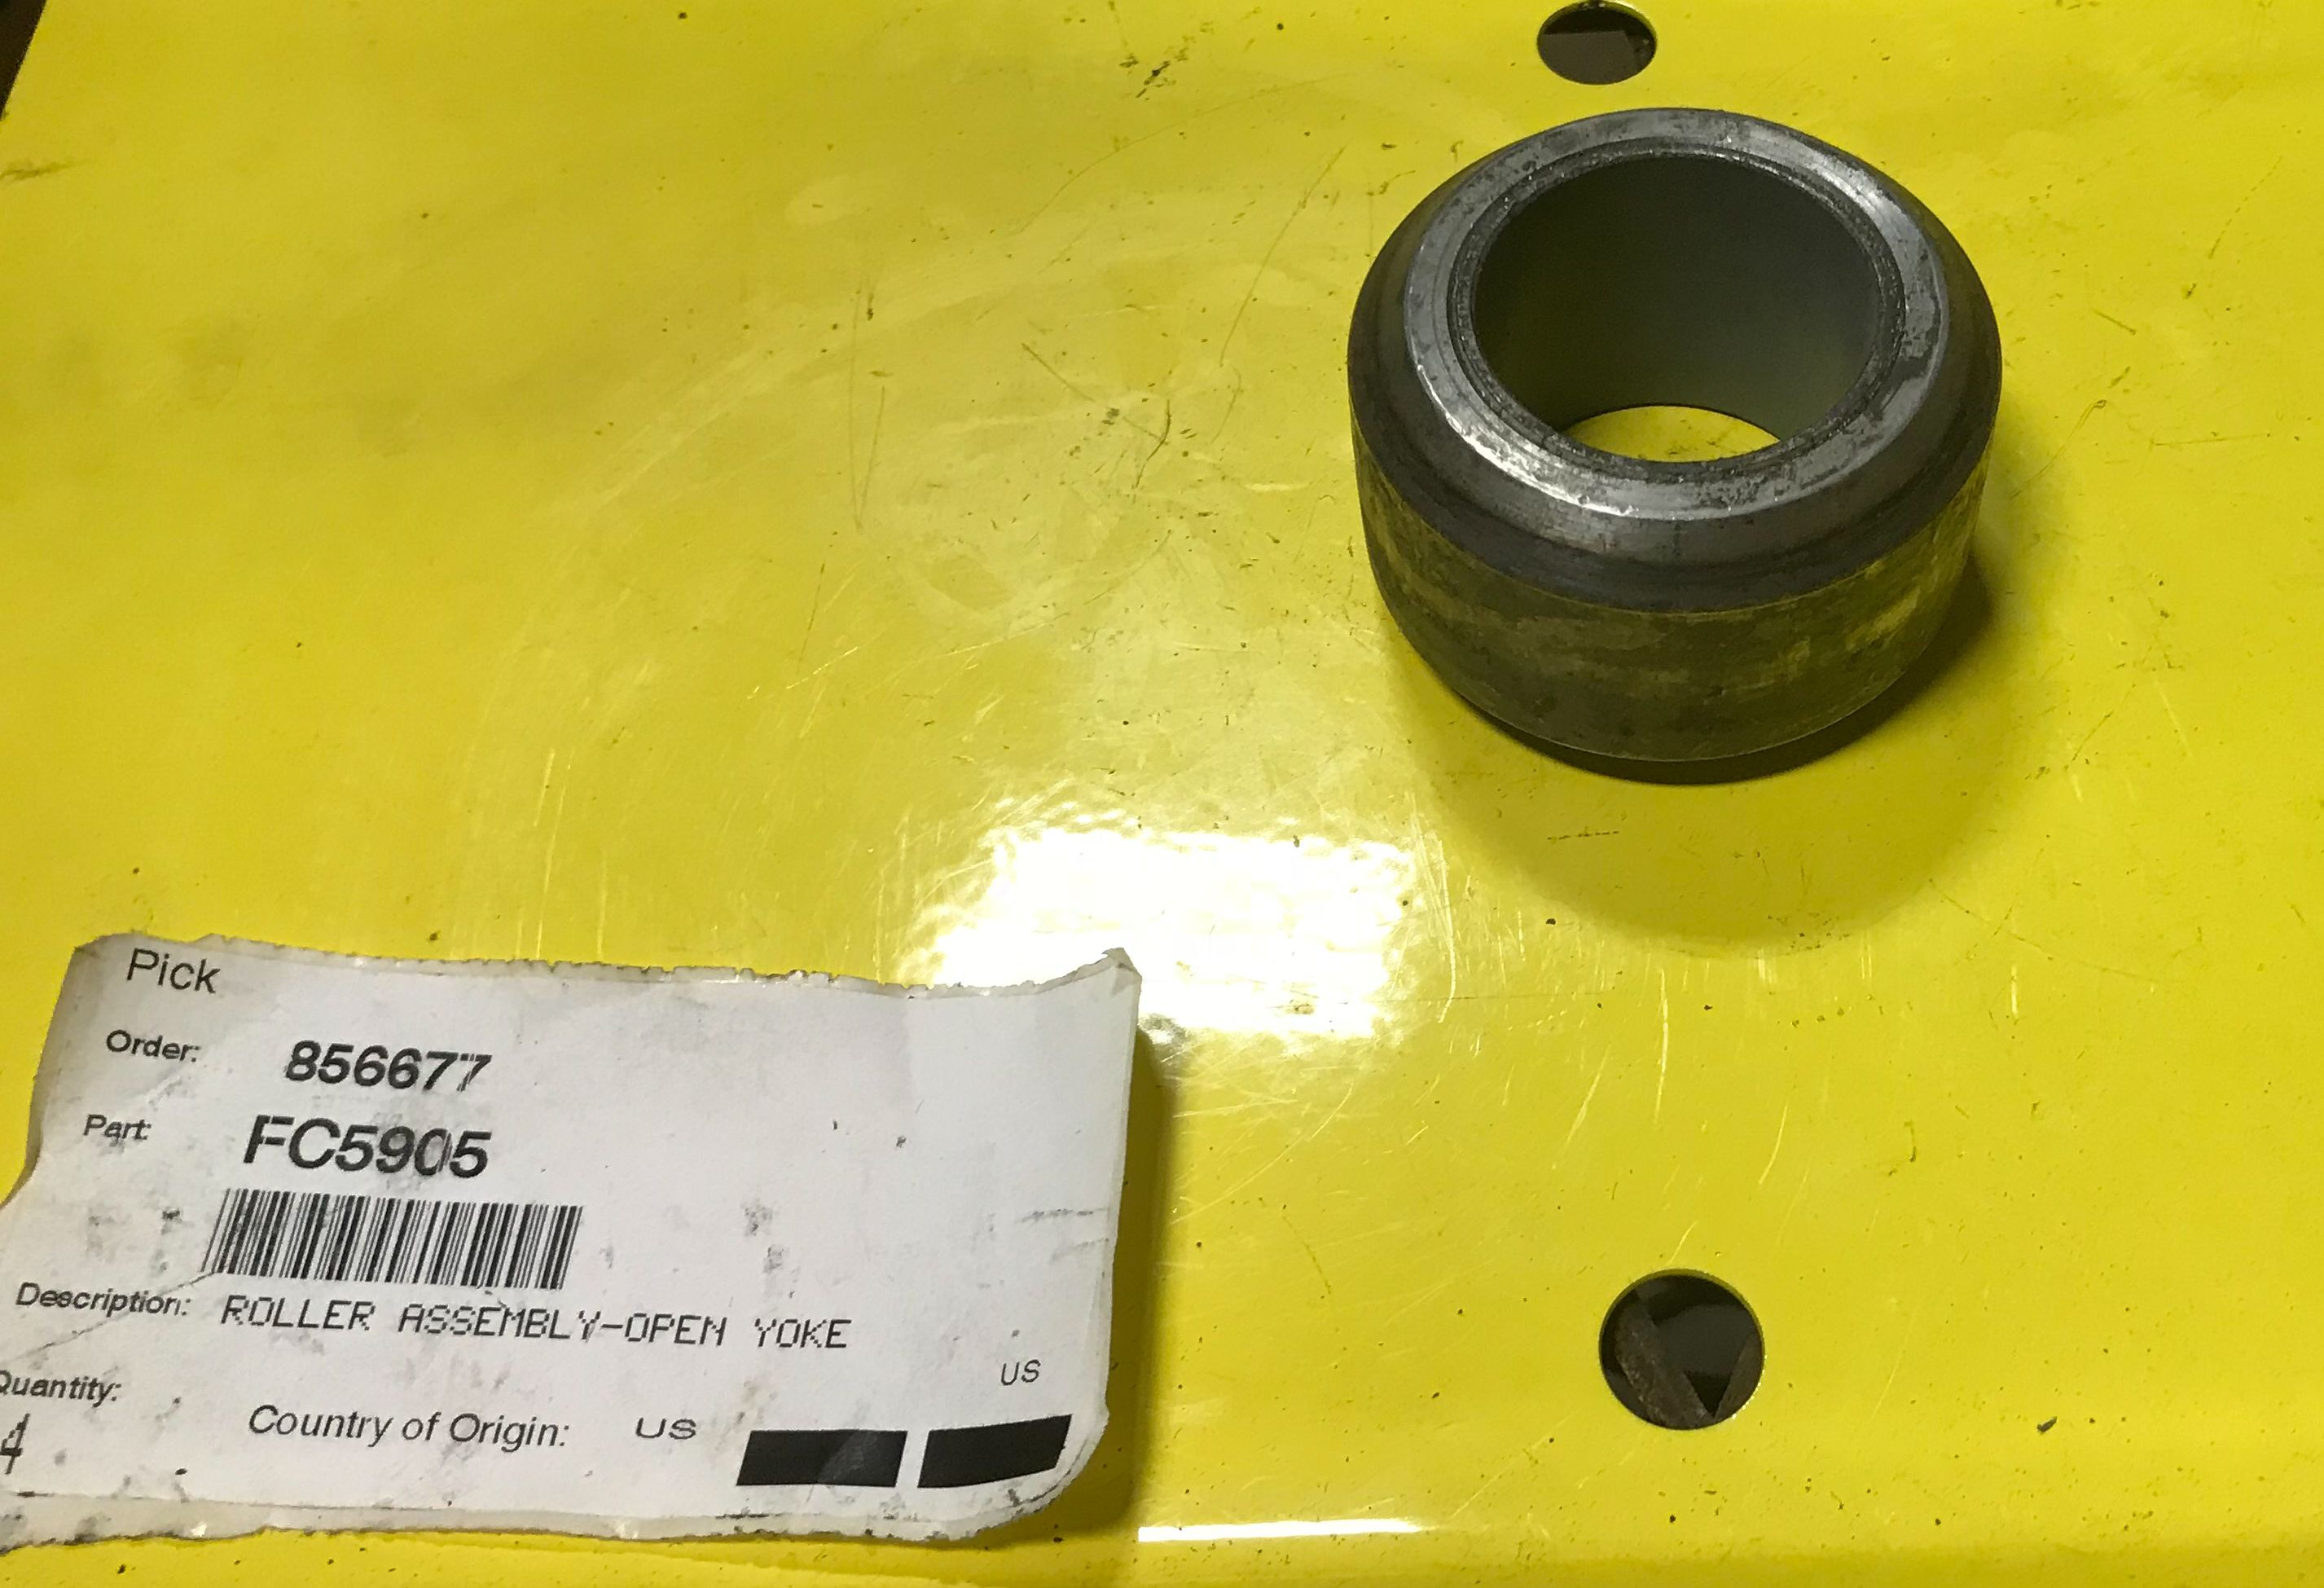 Rotary Lift Parts - R-FC5905